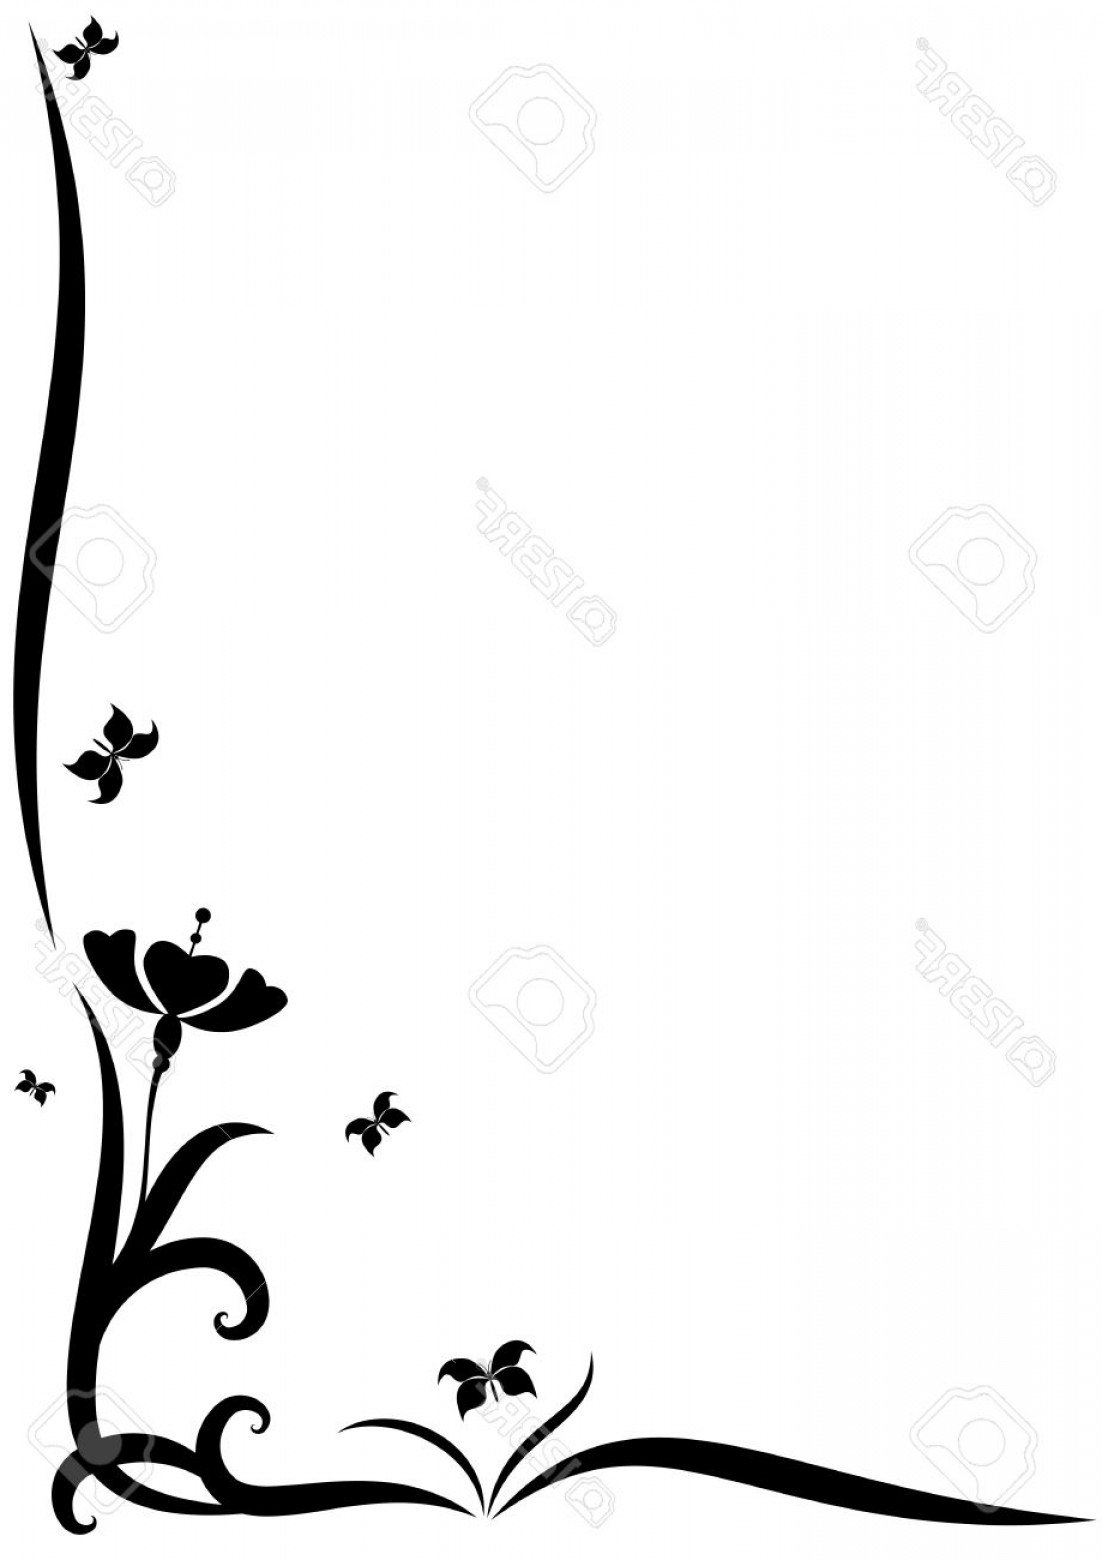 1102x1560 Photostock Vector Stylized Vector Border With Flowers For Corner